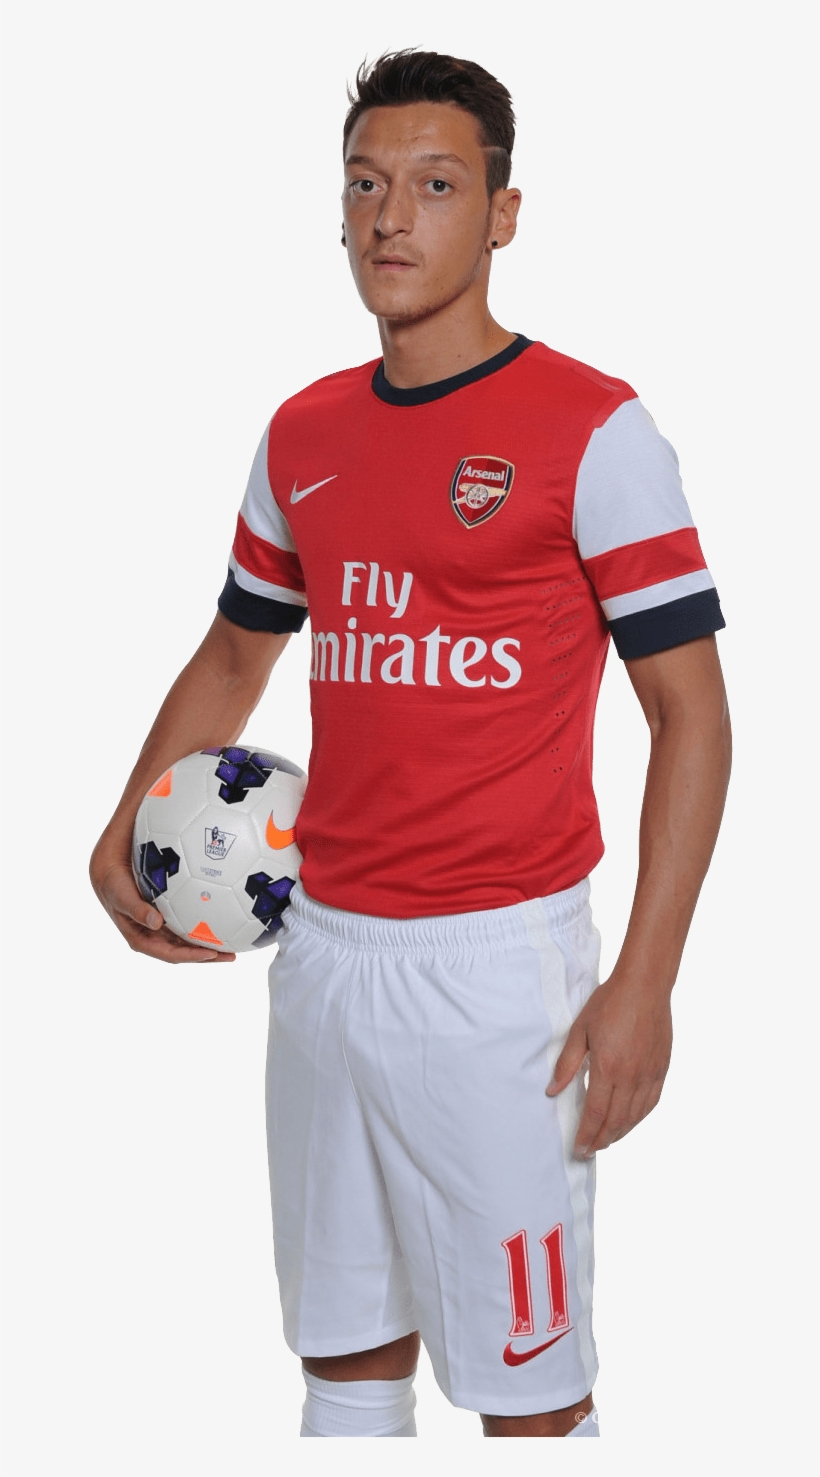 Kit Dls Arsenal : arsenal, Arsenal, Image, Transparent, Download, SeekPNG